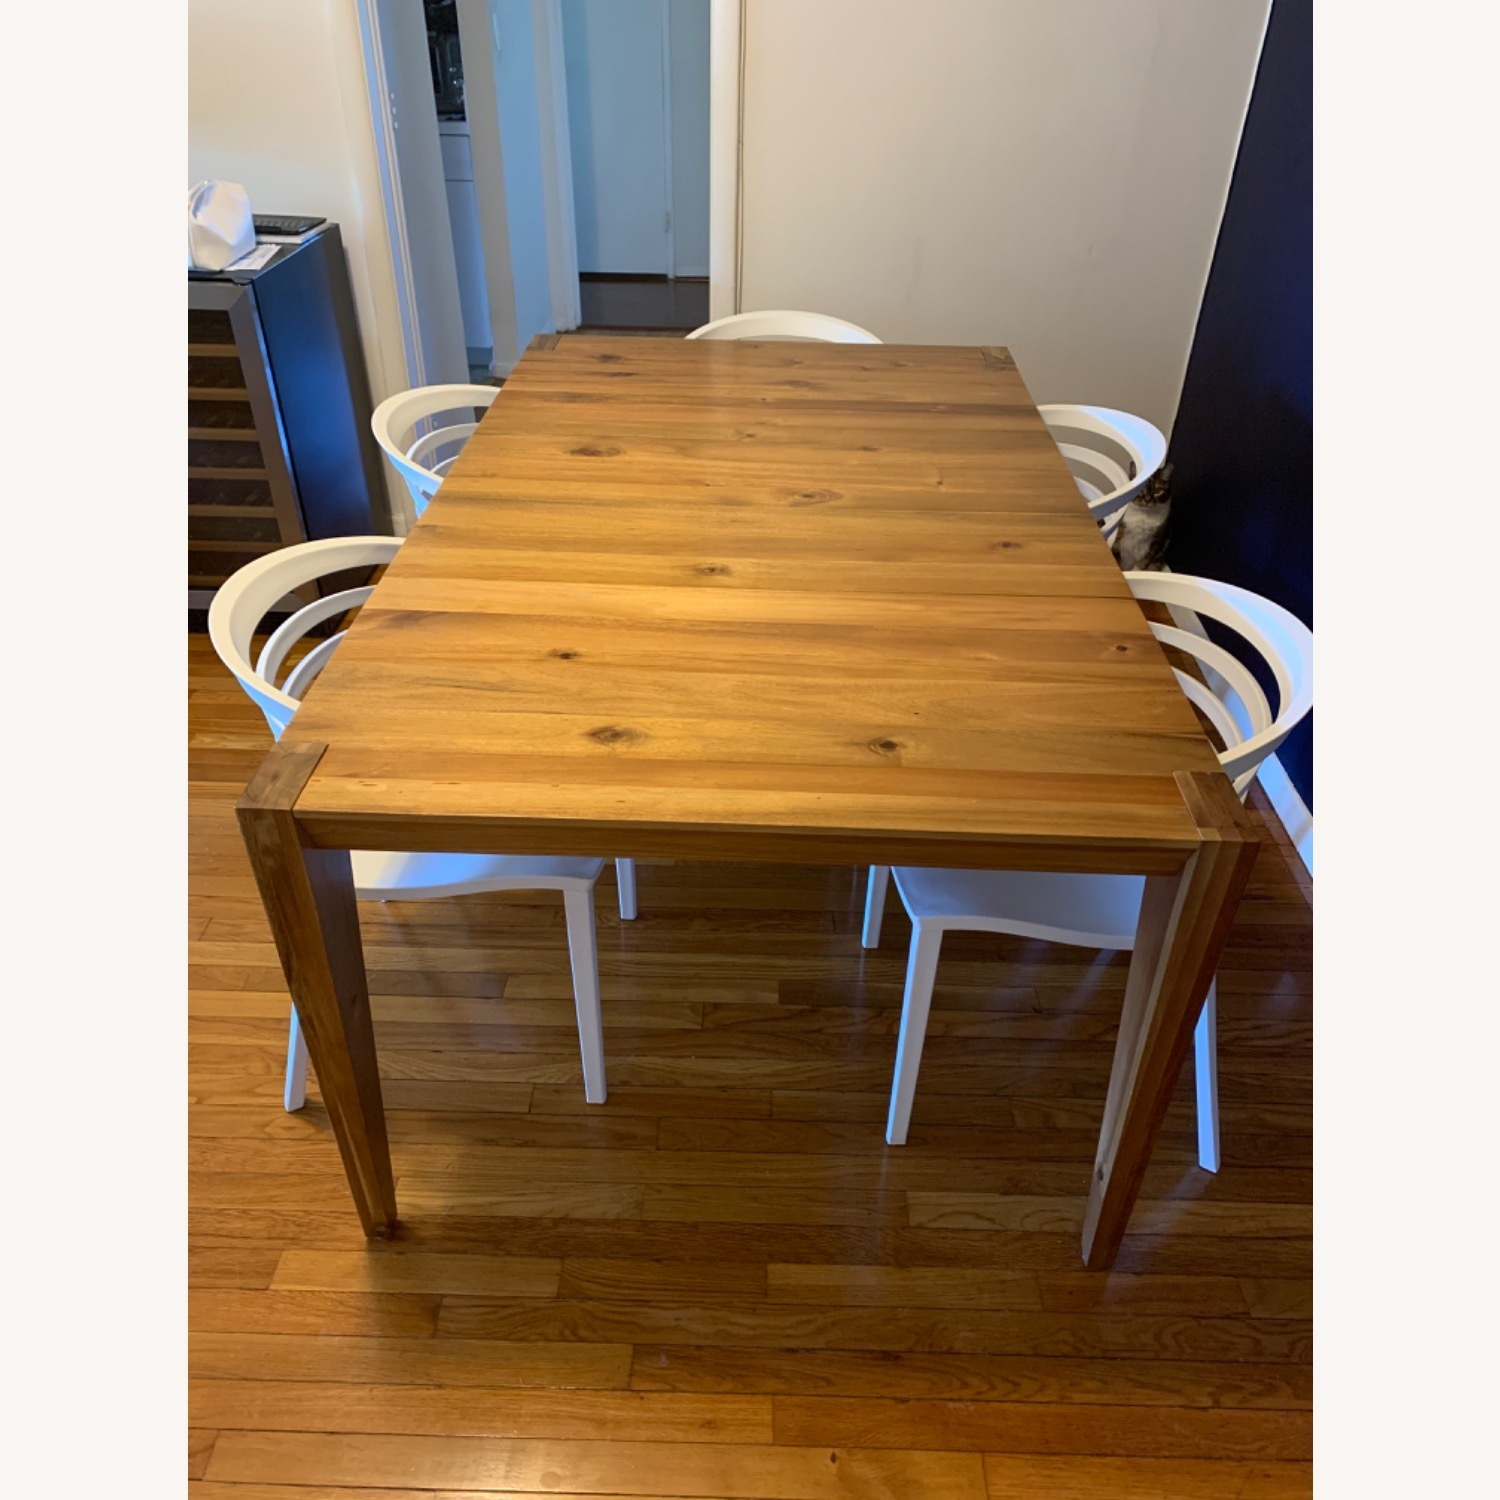 West Elm Anderson Dining Table - image-1